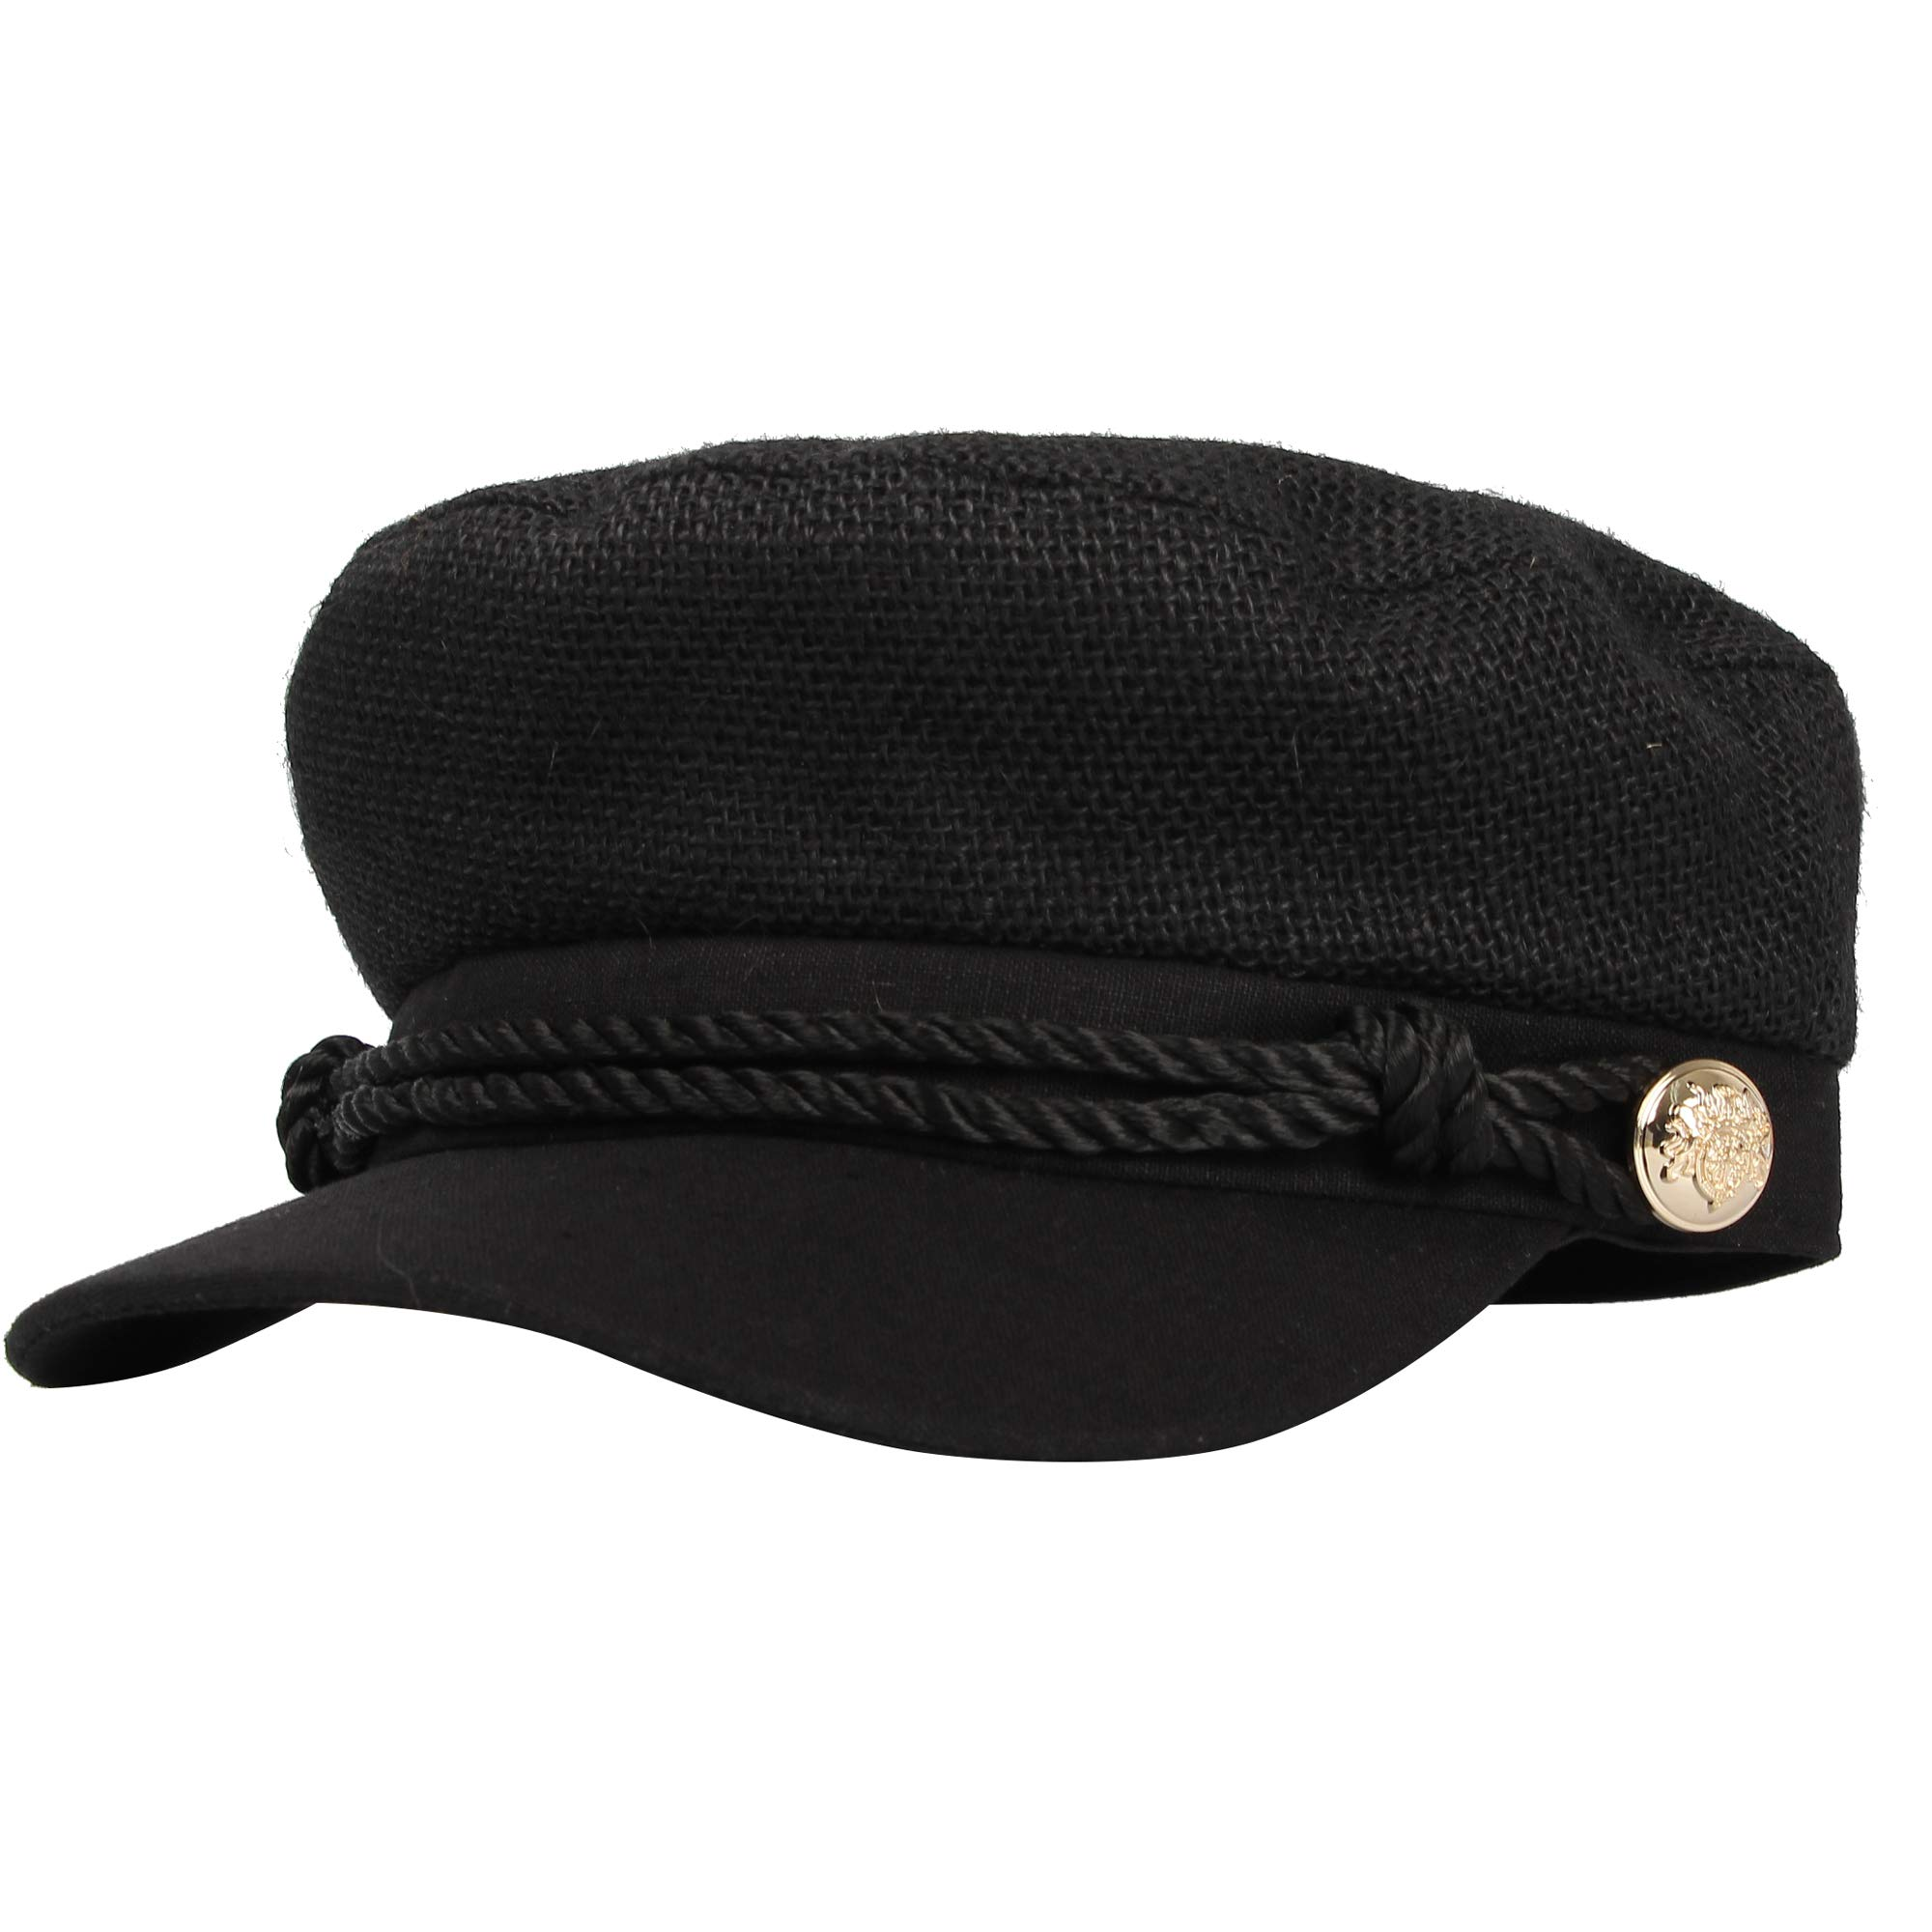 WITHMOONS Women Linen Newsboy Cap Mesh Breathable Summer Hat MUG1164 (Black) by WITHMOONS (Image #2)